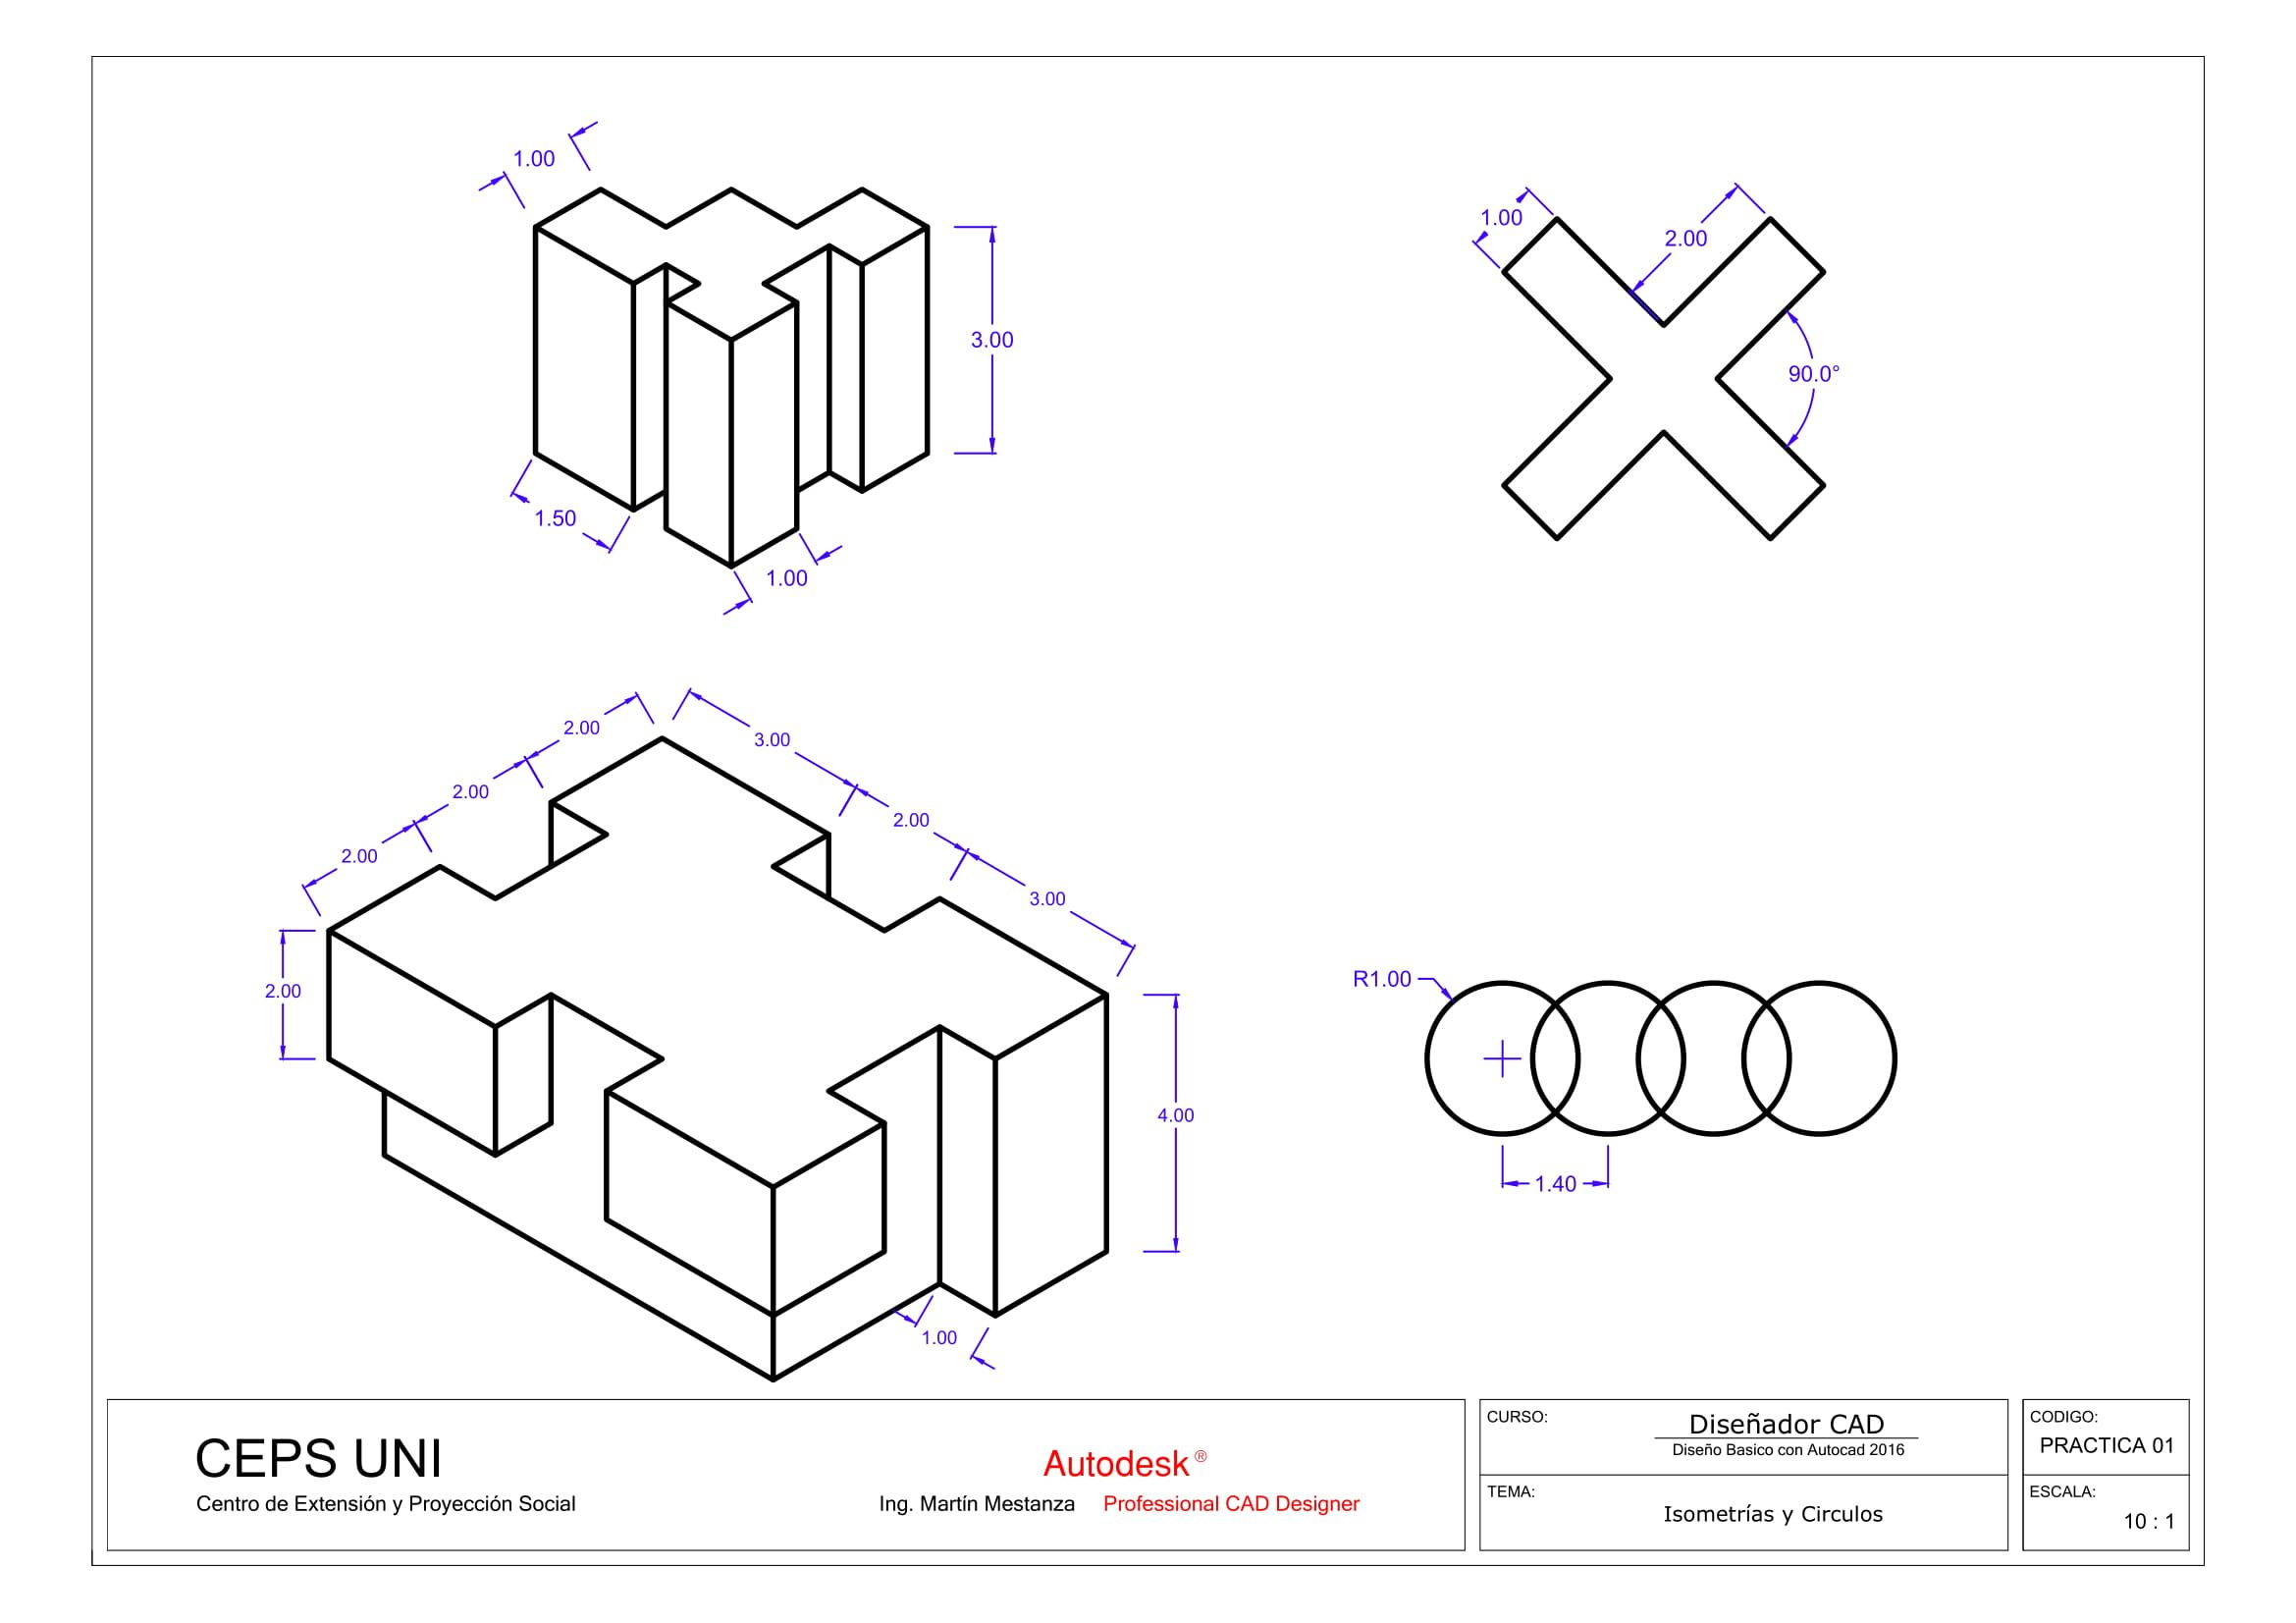 Practica De Clase Nº 01 Autocad Isometric Drawing Interesting Drawings